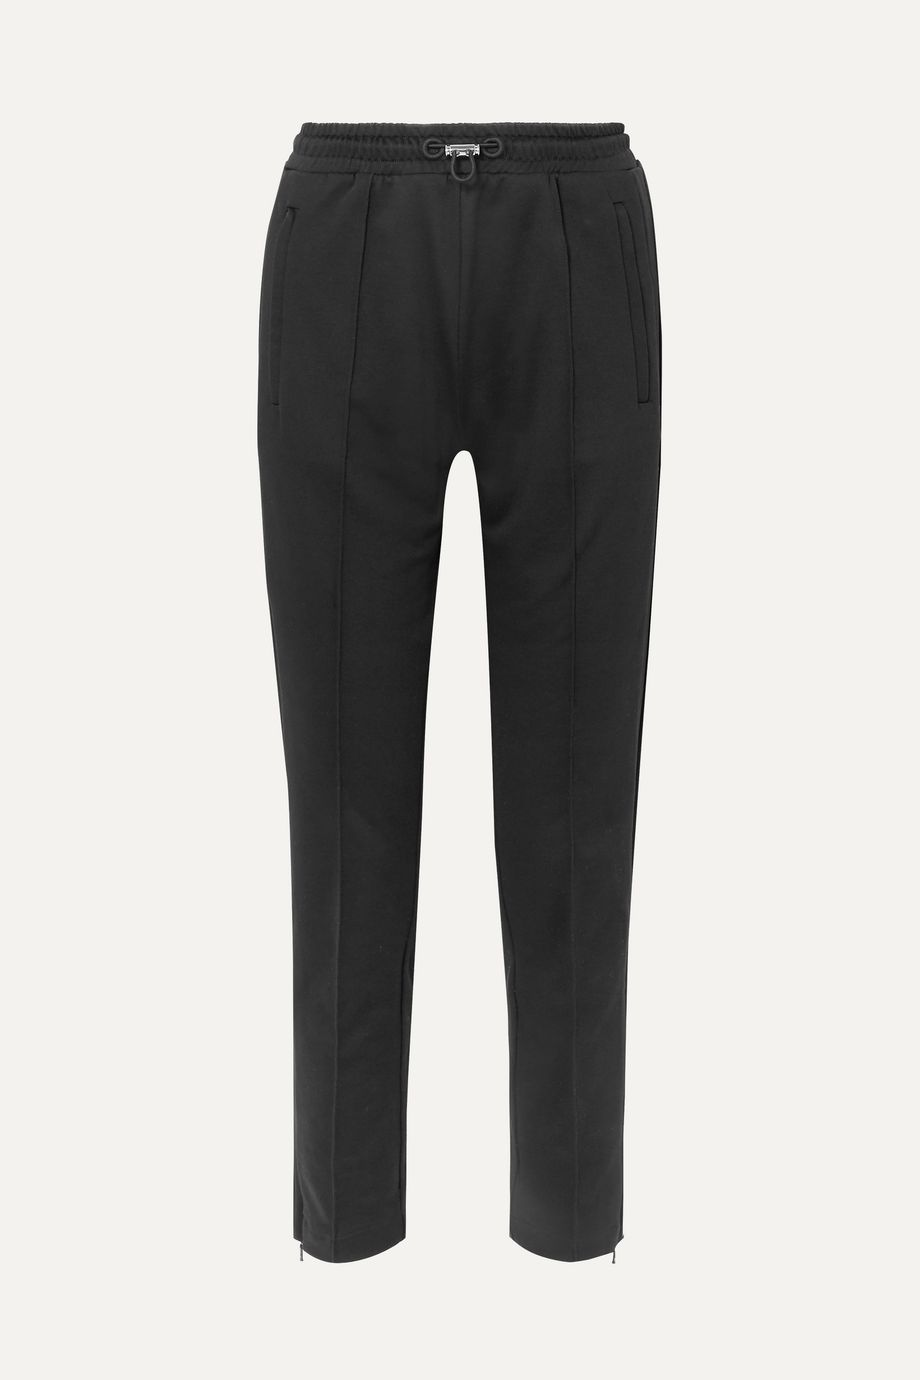 Moncler Cotton-jersey track pants